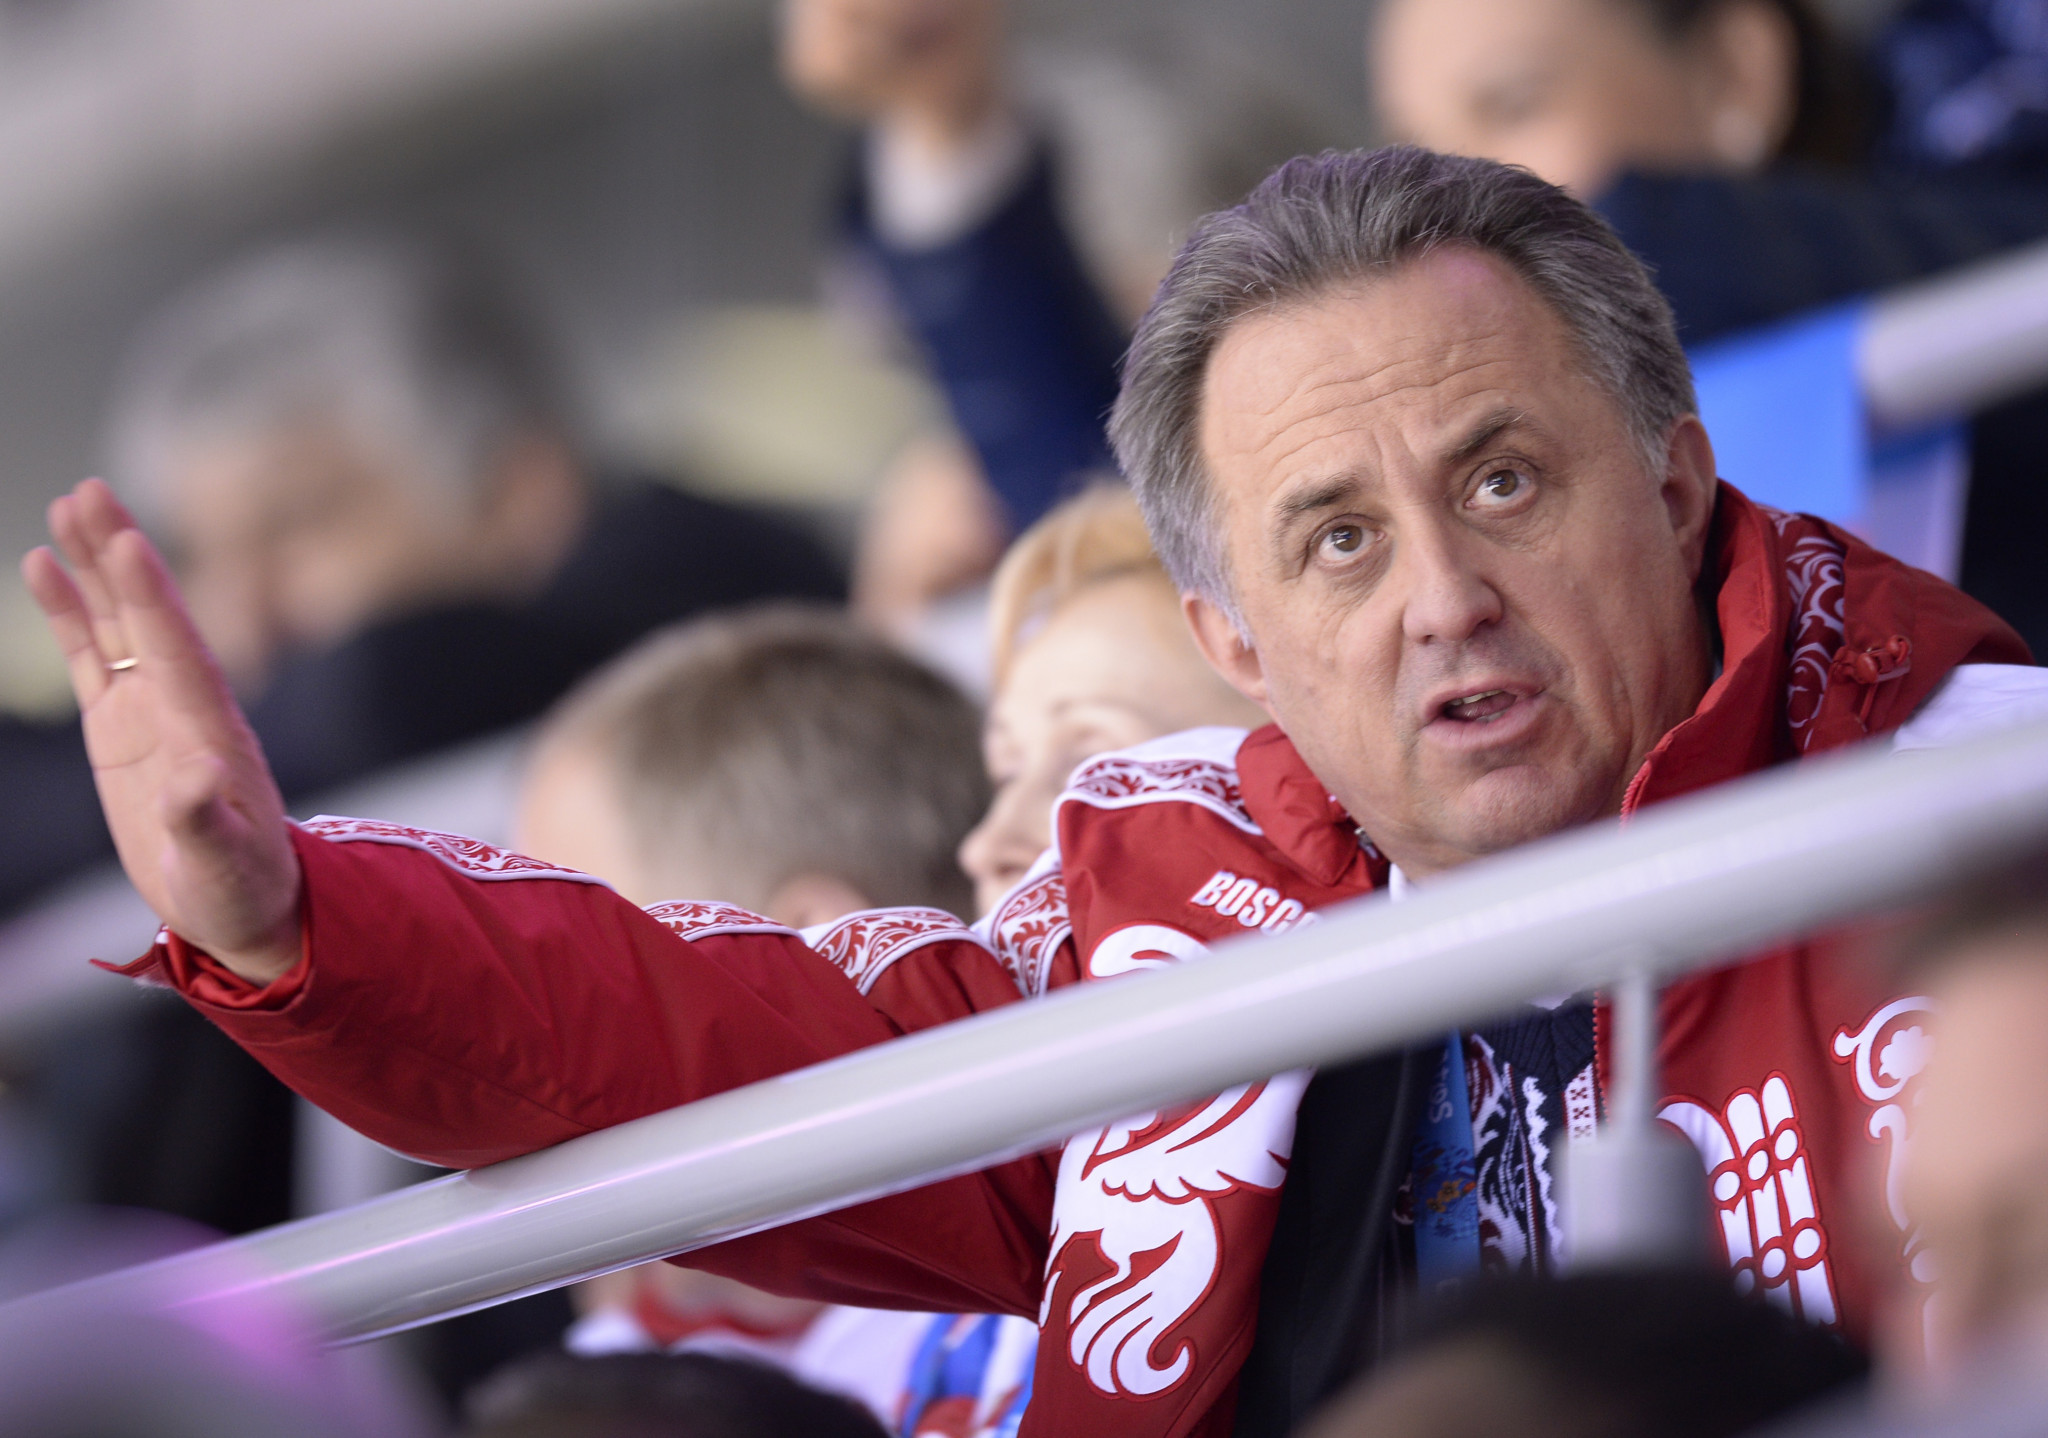 Vitaly Mutko has claimed Russia will only pay a $15 million fine to the IOC if they receive guarantee no further disciplinary action will be taken ©Getty Images